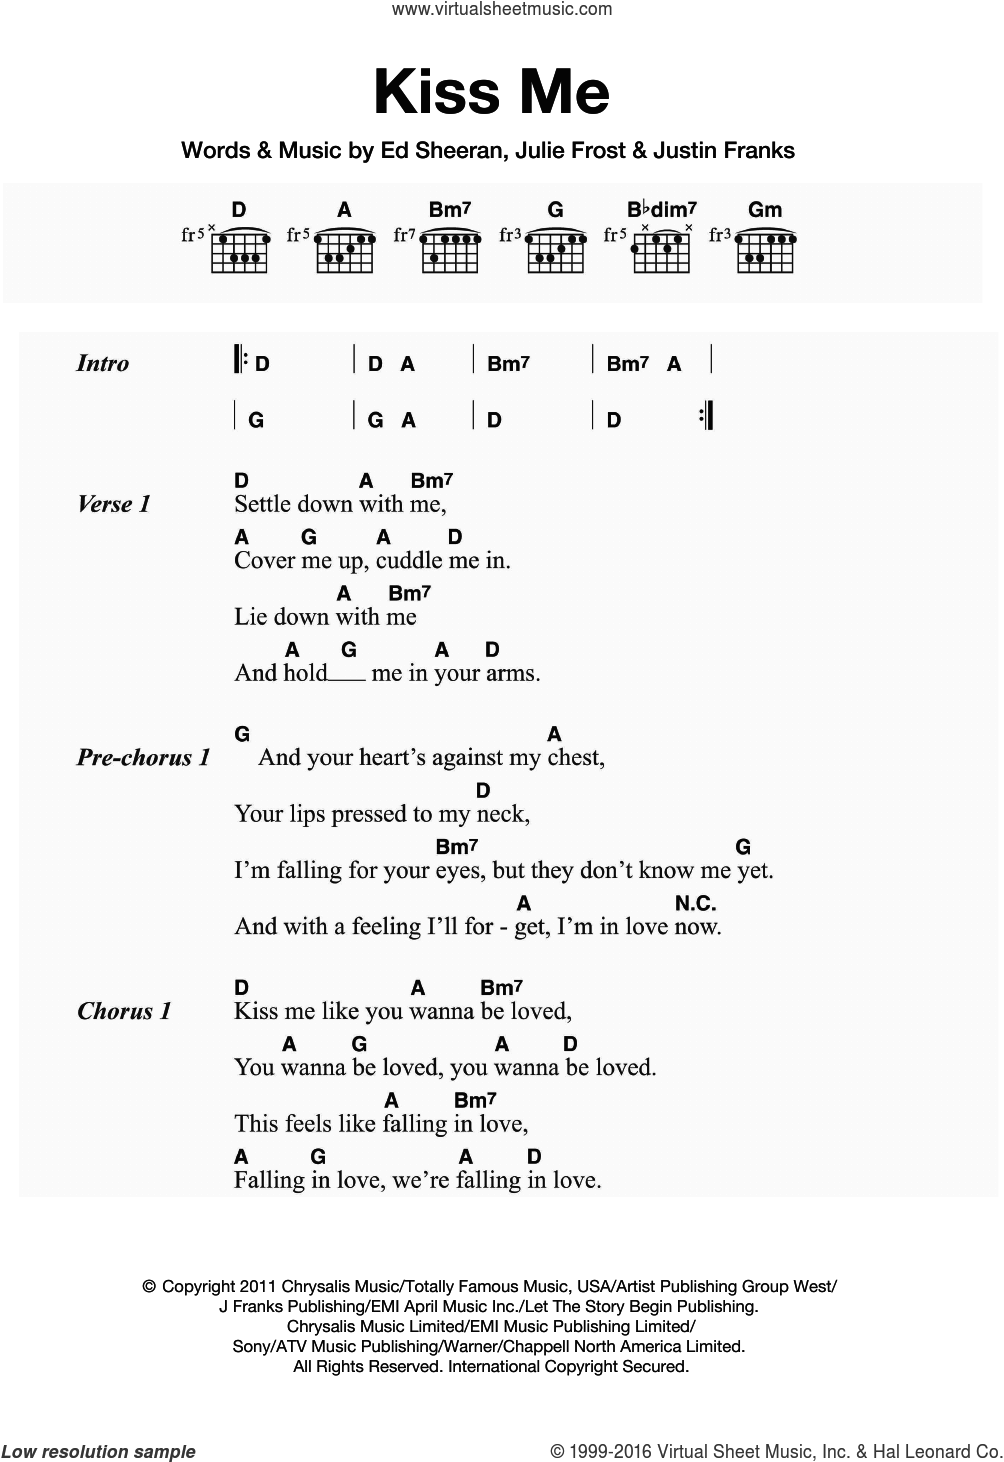 Kiss Me sheet music for guitar (chords) by Julie Frost, Ed Sheeran and Justin Franks. Score Image Preview.